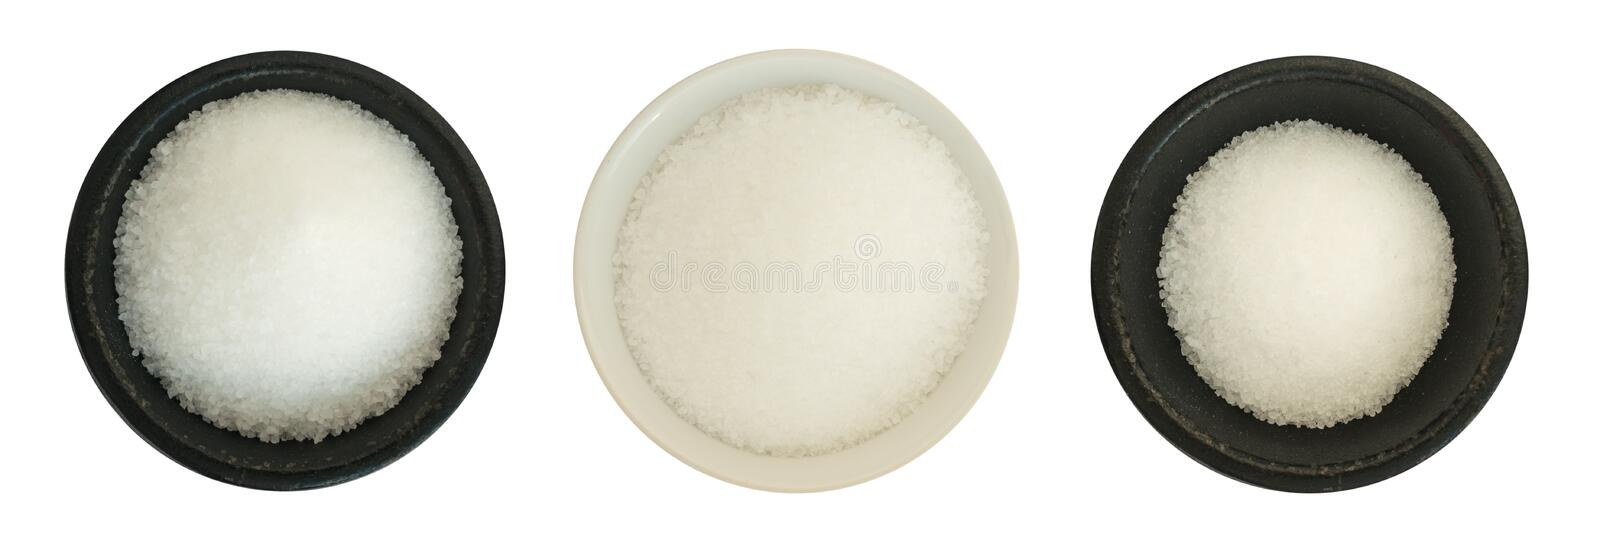 White Sea Salt in a Round Bowl Isolated royalty free stock image